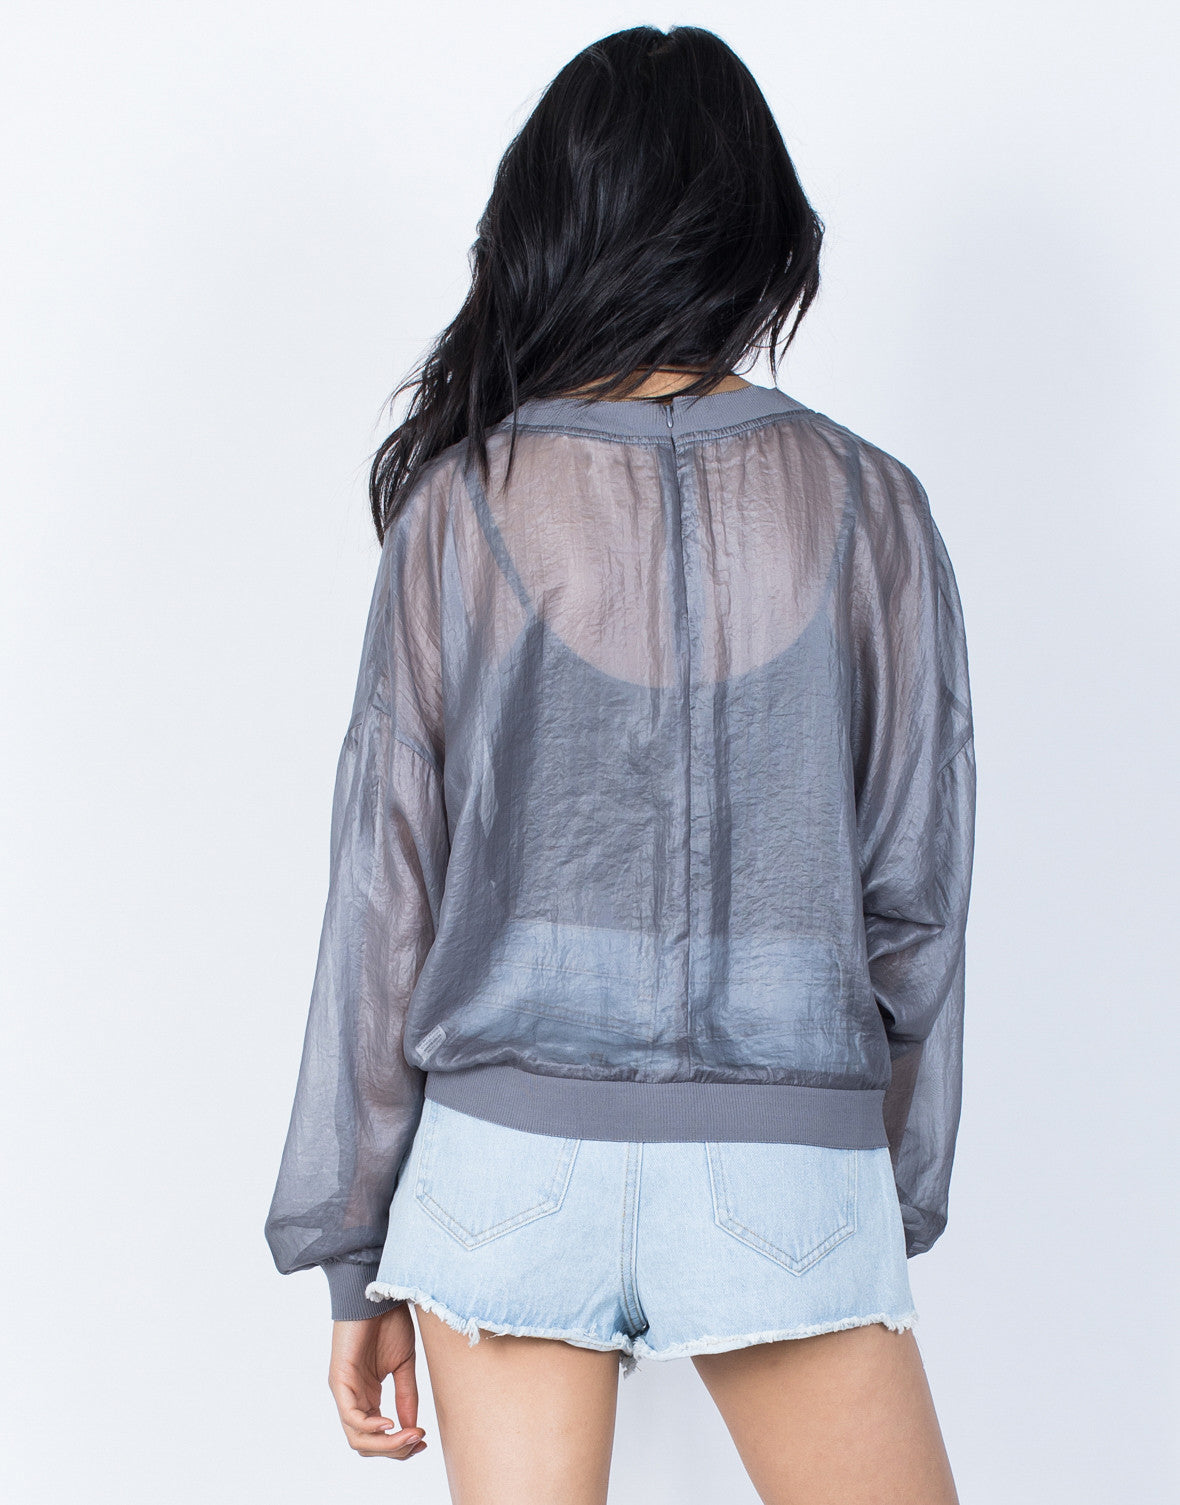 Back View of See Right Through Me Blouse